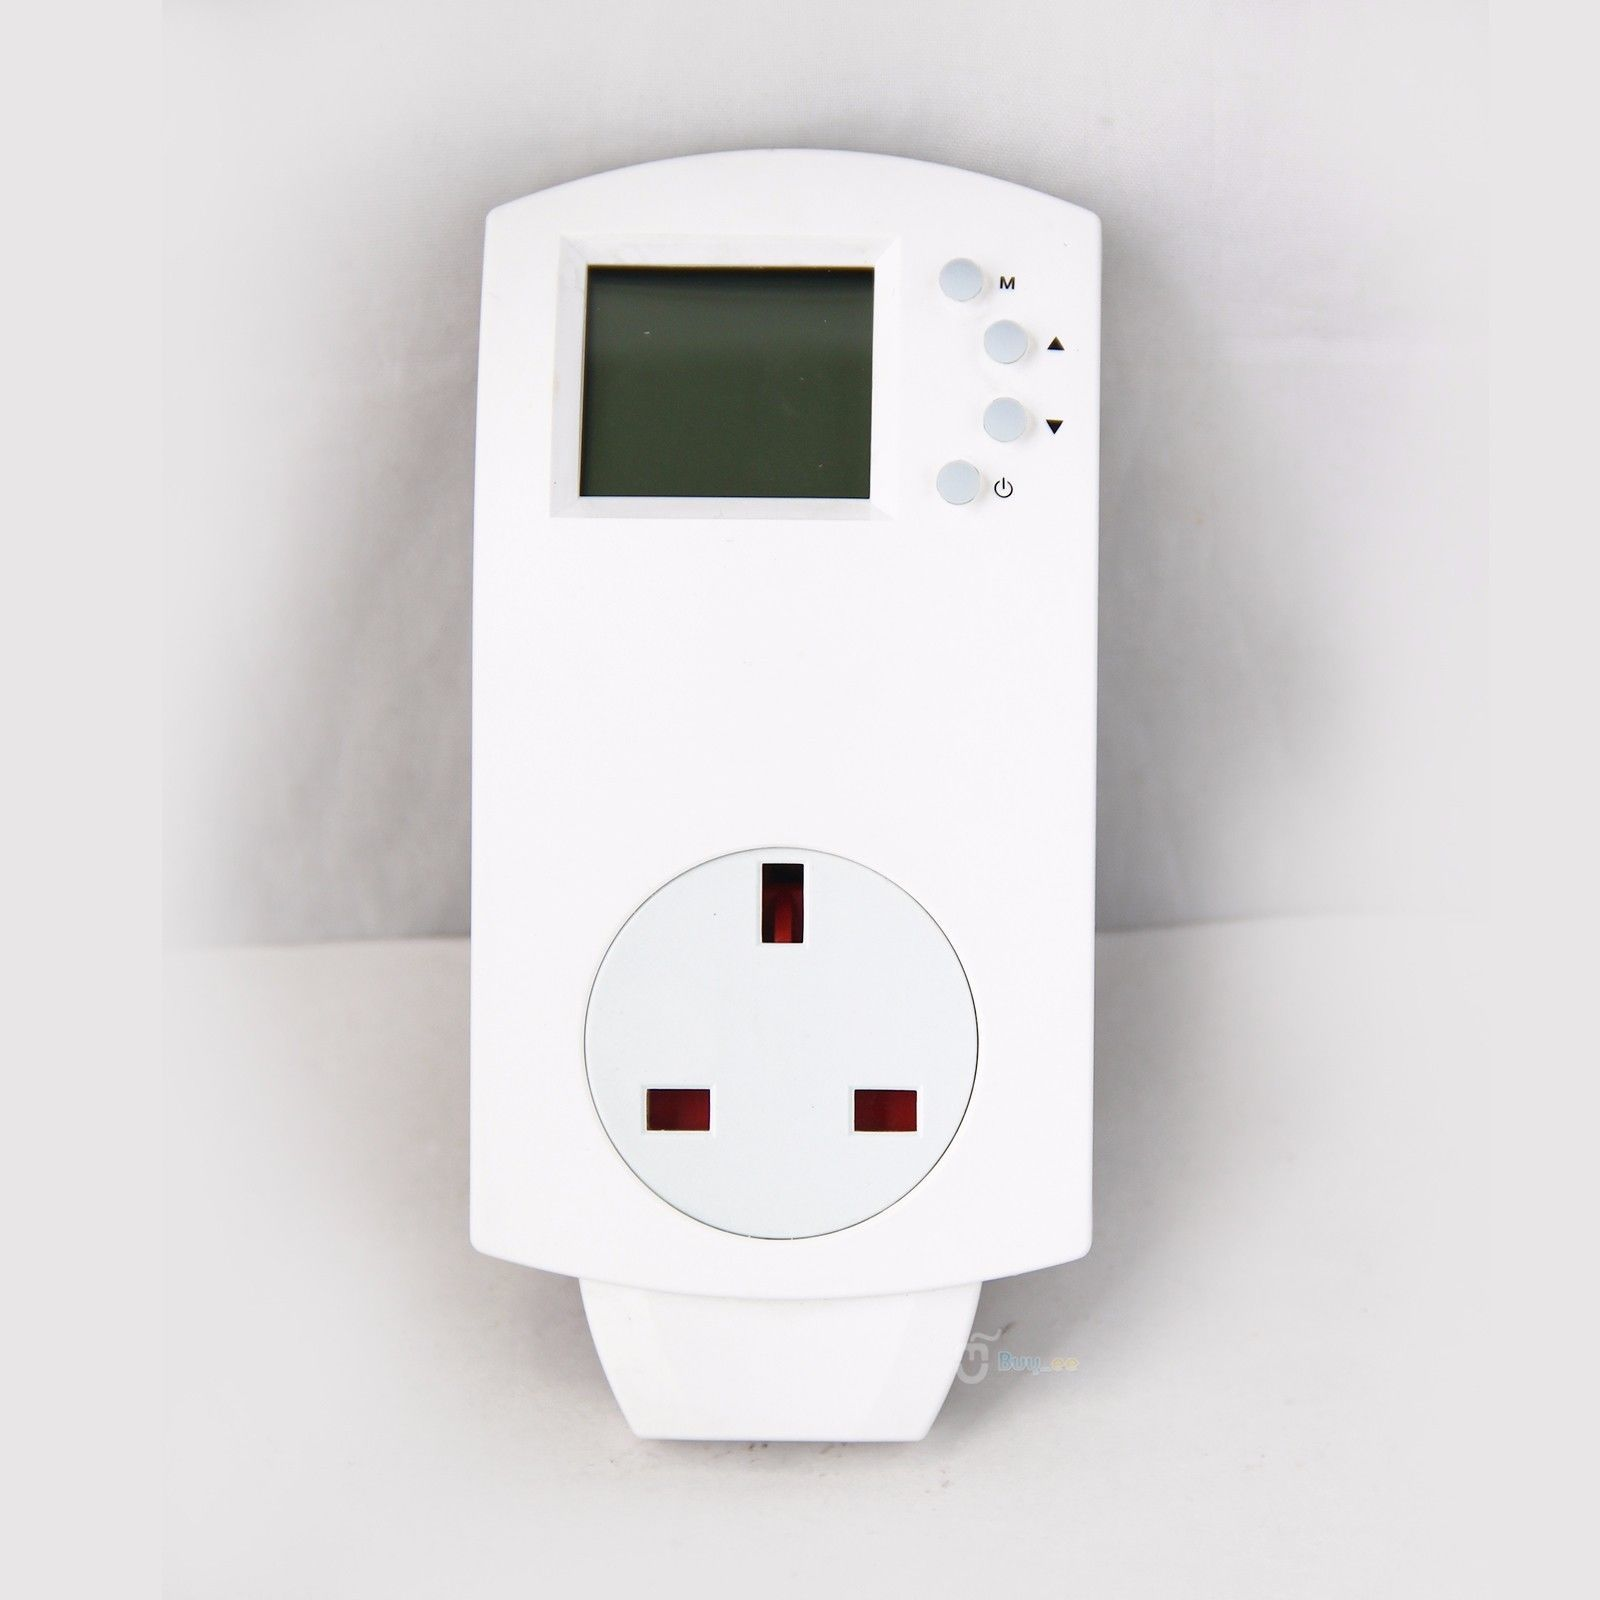 12 99 Gbp Hot Plug In Thermostat Electric Digital Heating